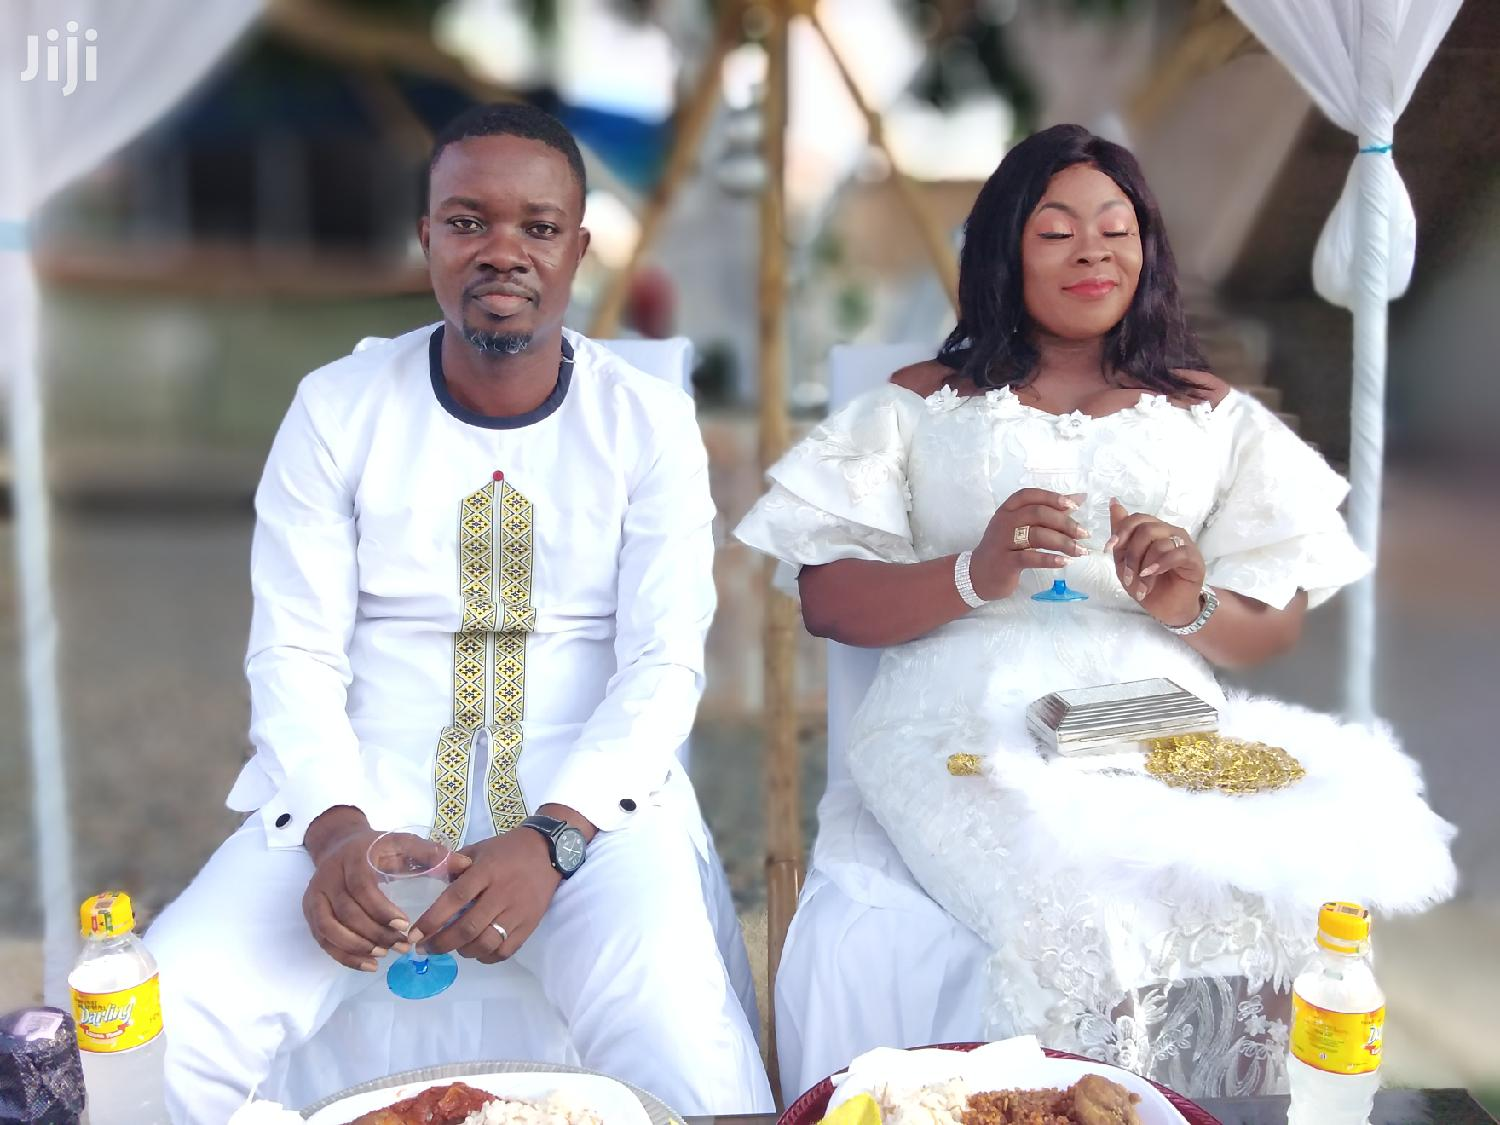 Engagement Videography And Photography | Photography & Video Services for sale in Accra Metropolitan, Greater Accra, Ghana